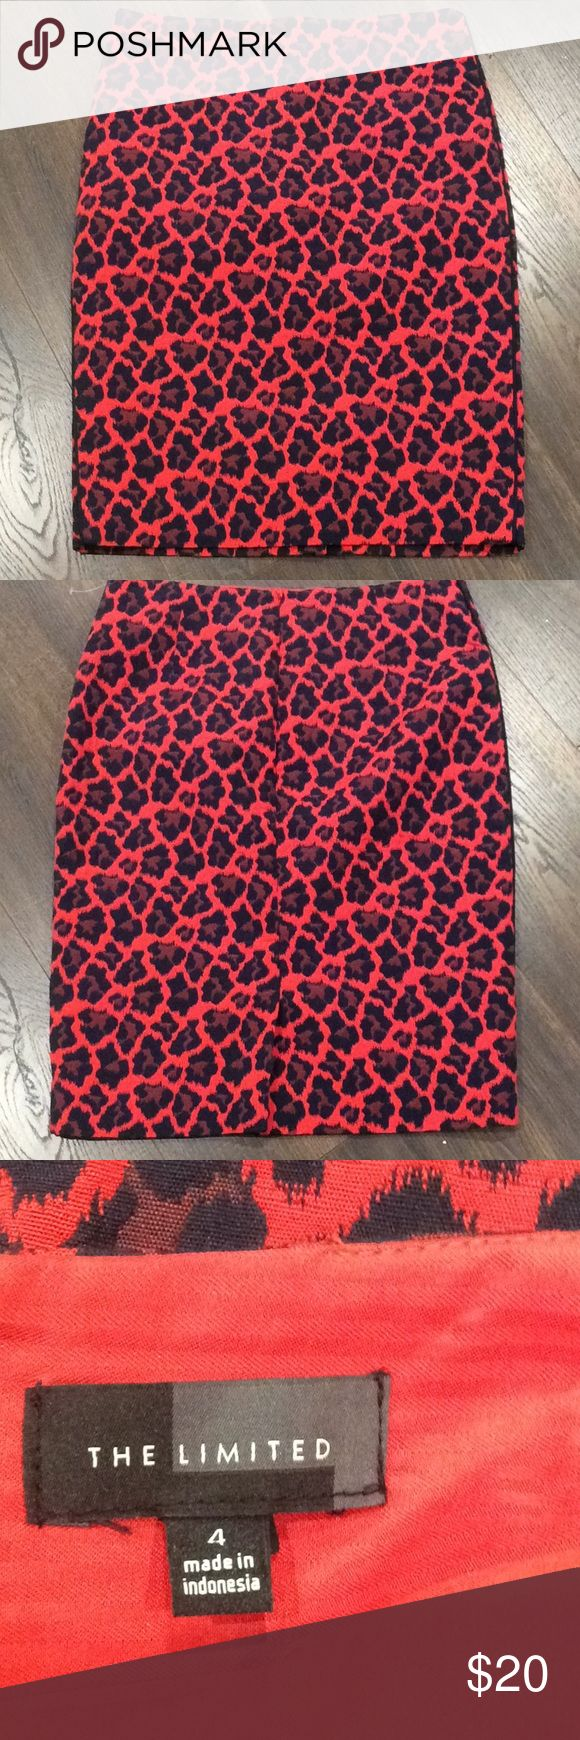 The Limited Skirt ✨Just Listed✨ Gorgeous like new The Limited Skirt!  Length: approx. 22.5  Size: 4  Pattern: Leopard print  Material: 65% Cotton and 35% Polyester   Fully lined/lining 100% polyester   Versatile piece for your wardrobe!  It can be used for work or for an evening of fun. The Limited Skirts